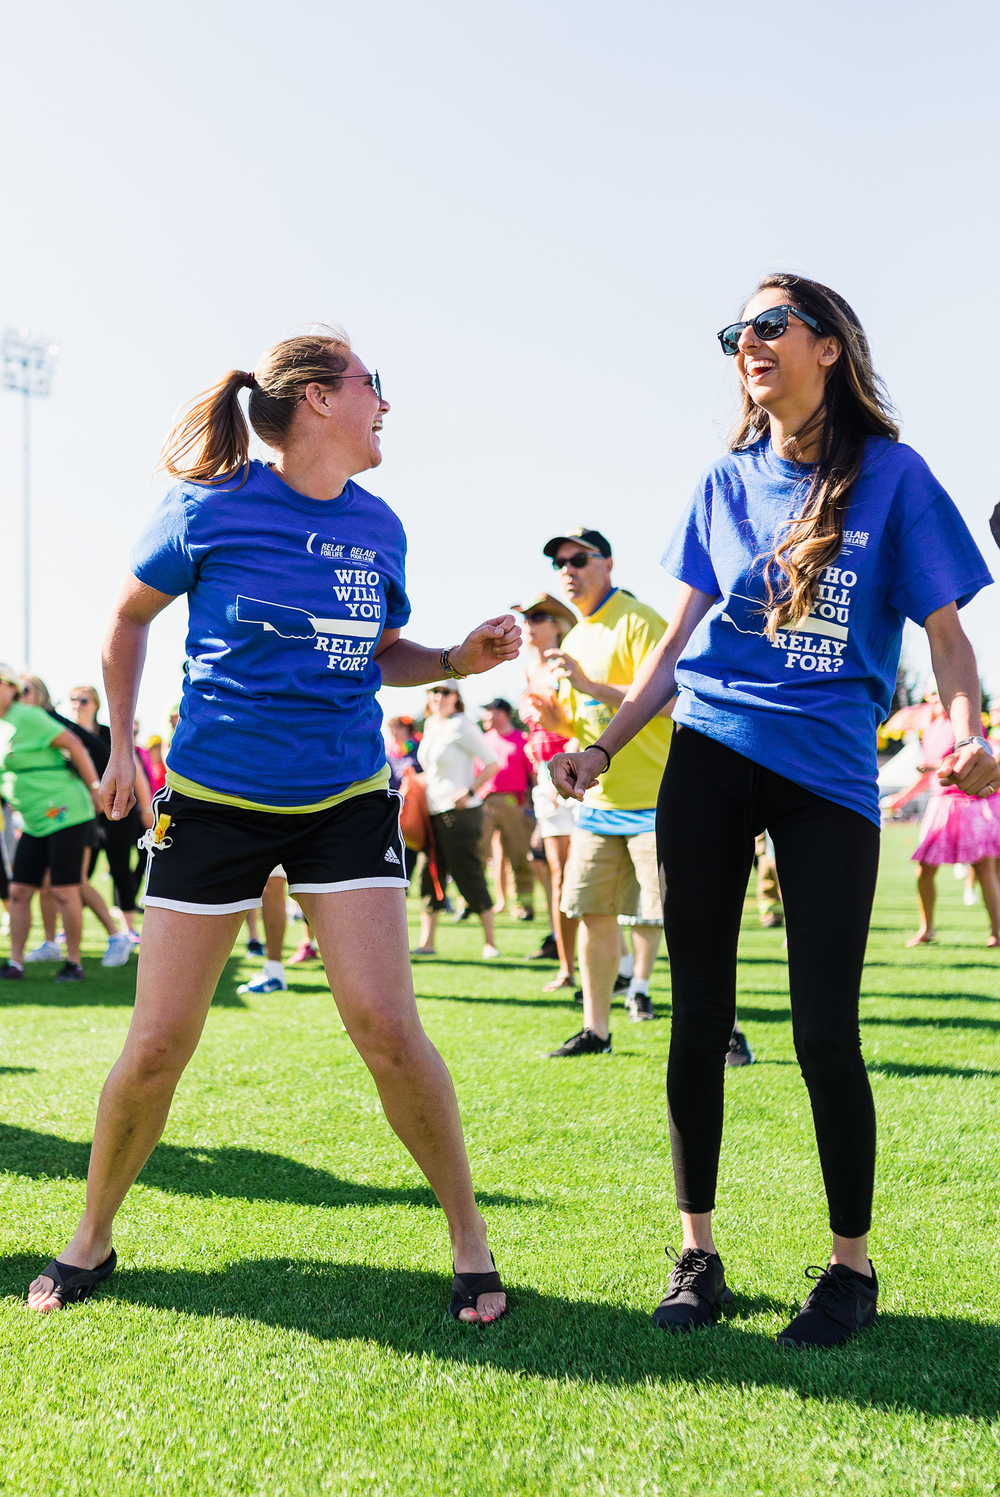 Lily_and_Lane_Relay_For_Life_Victoria_2015 (23).jpg